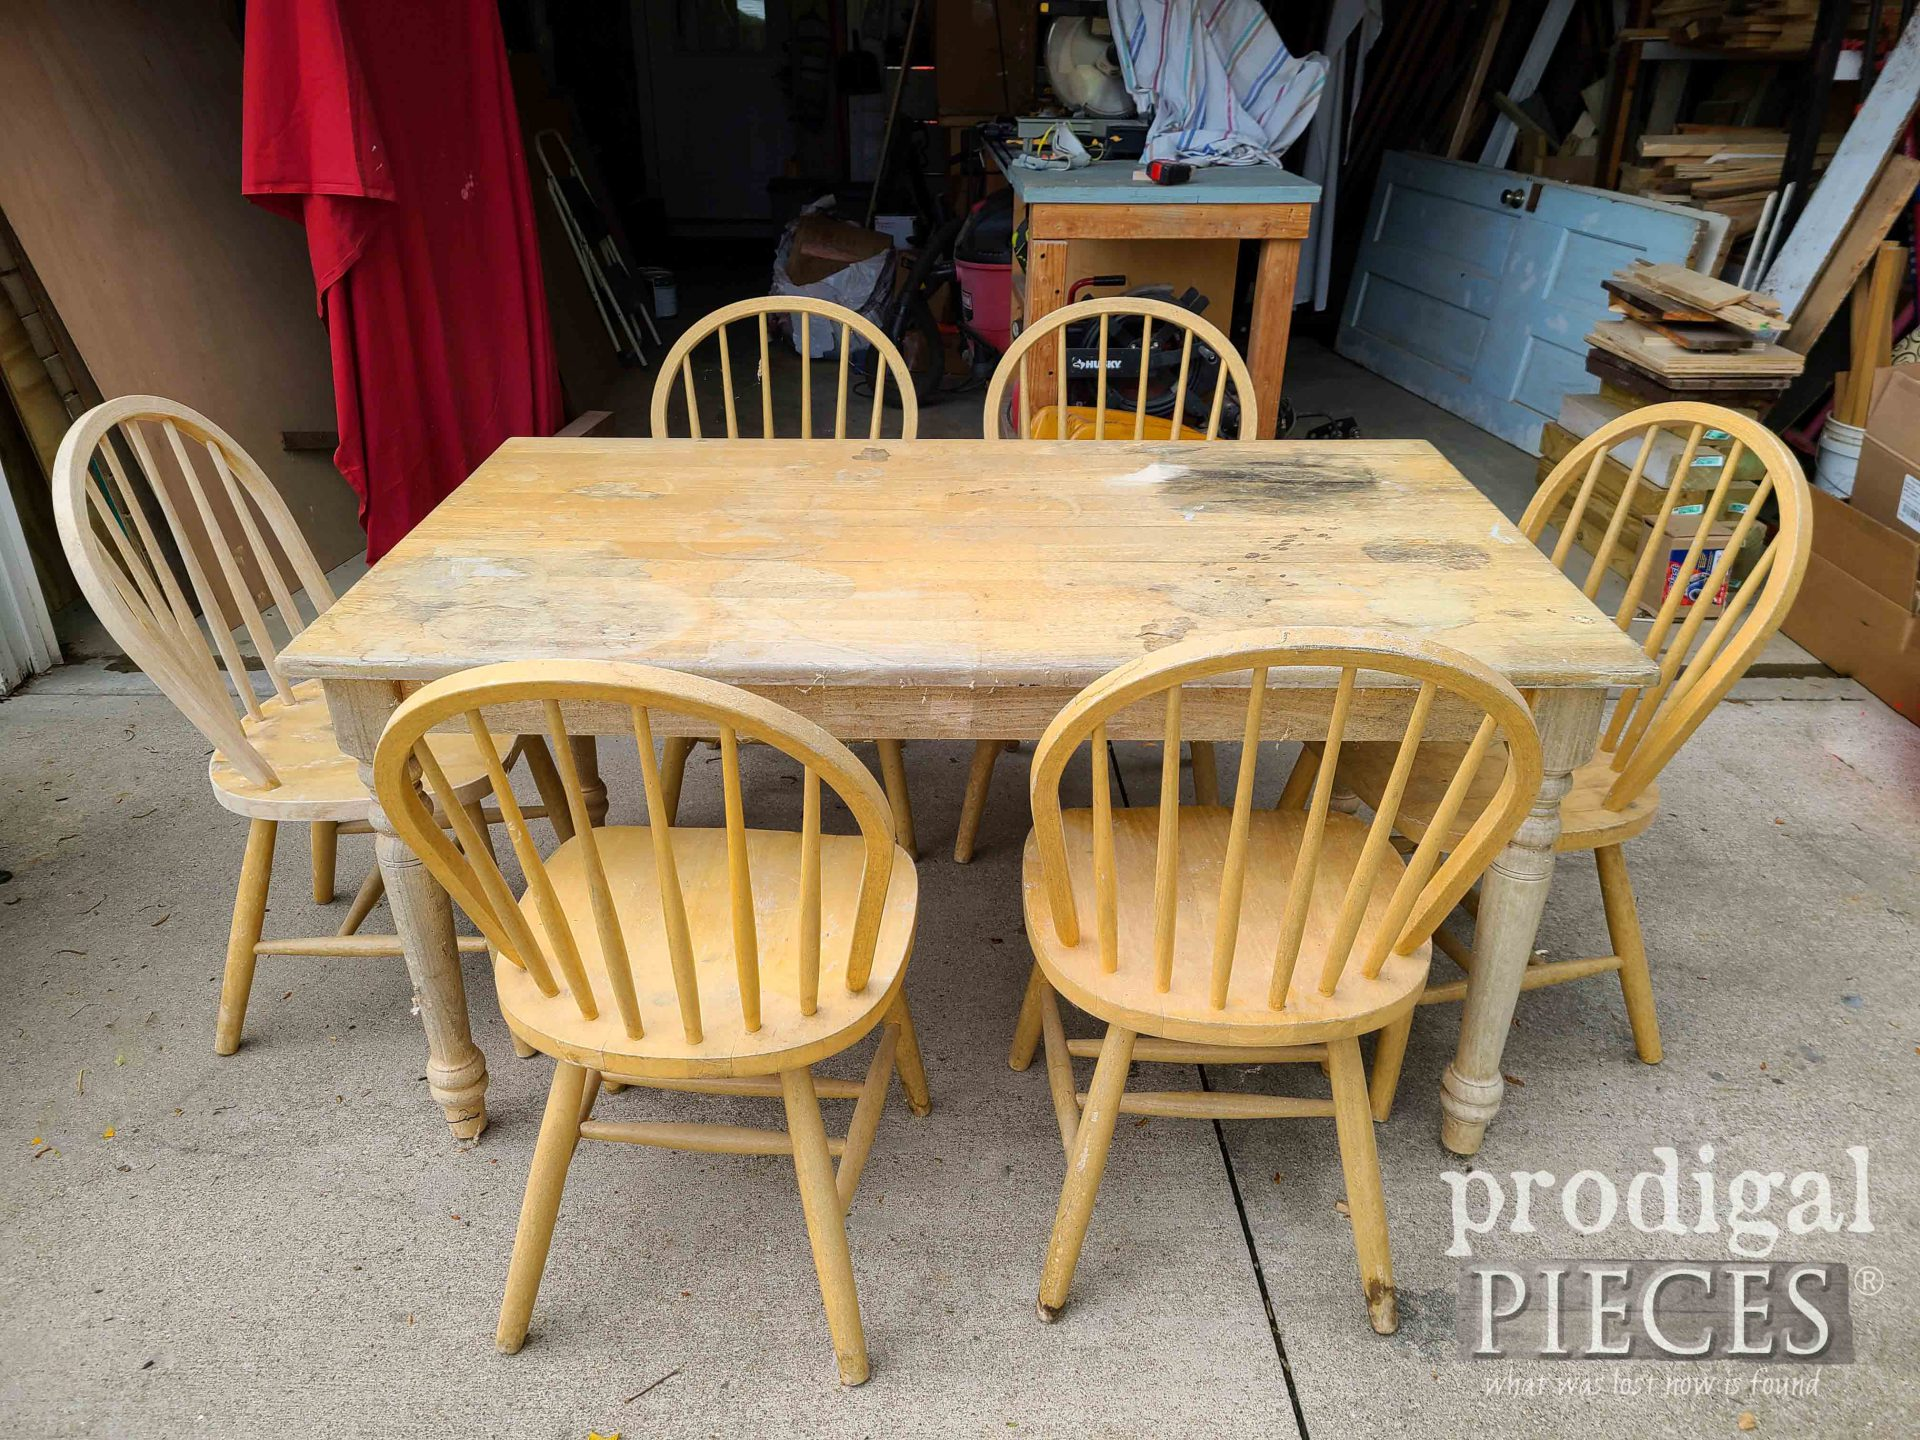 Damaged Farmhouse Dining Table Before Makeover by Prodigal Pieces | prodigalpieces.com #prodigalpieces